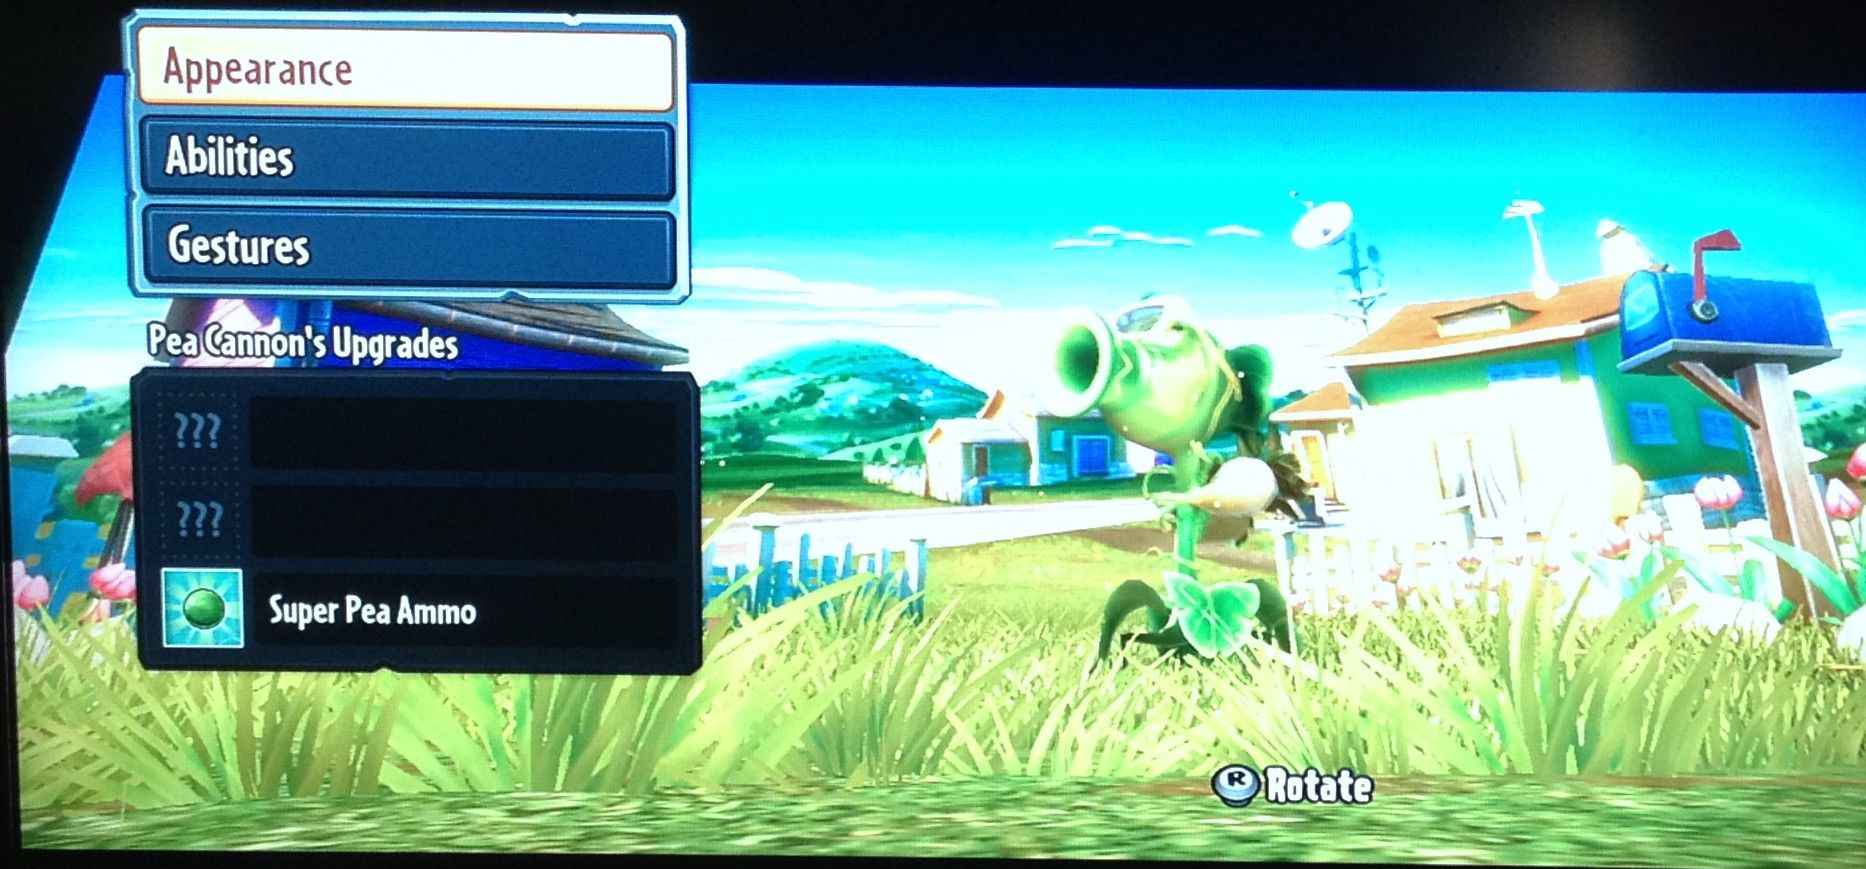 Plants vs Zombies Garden Warfare: How to Get the Most Coins